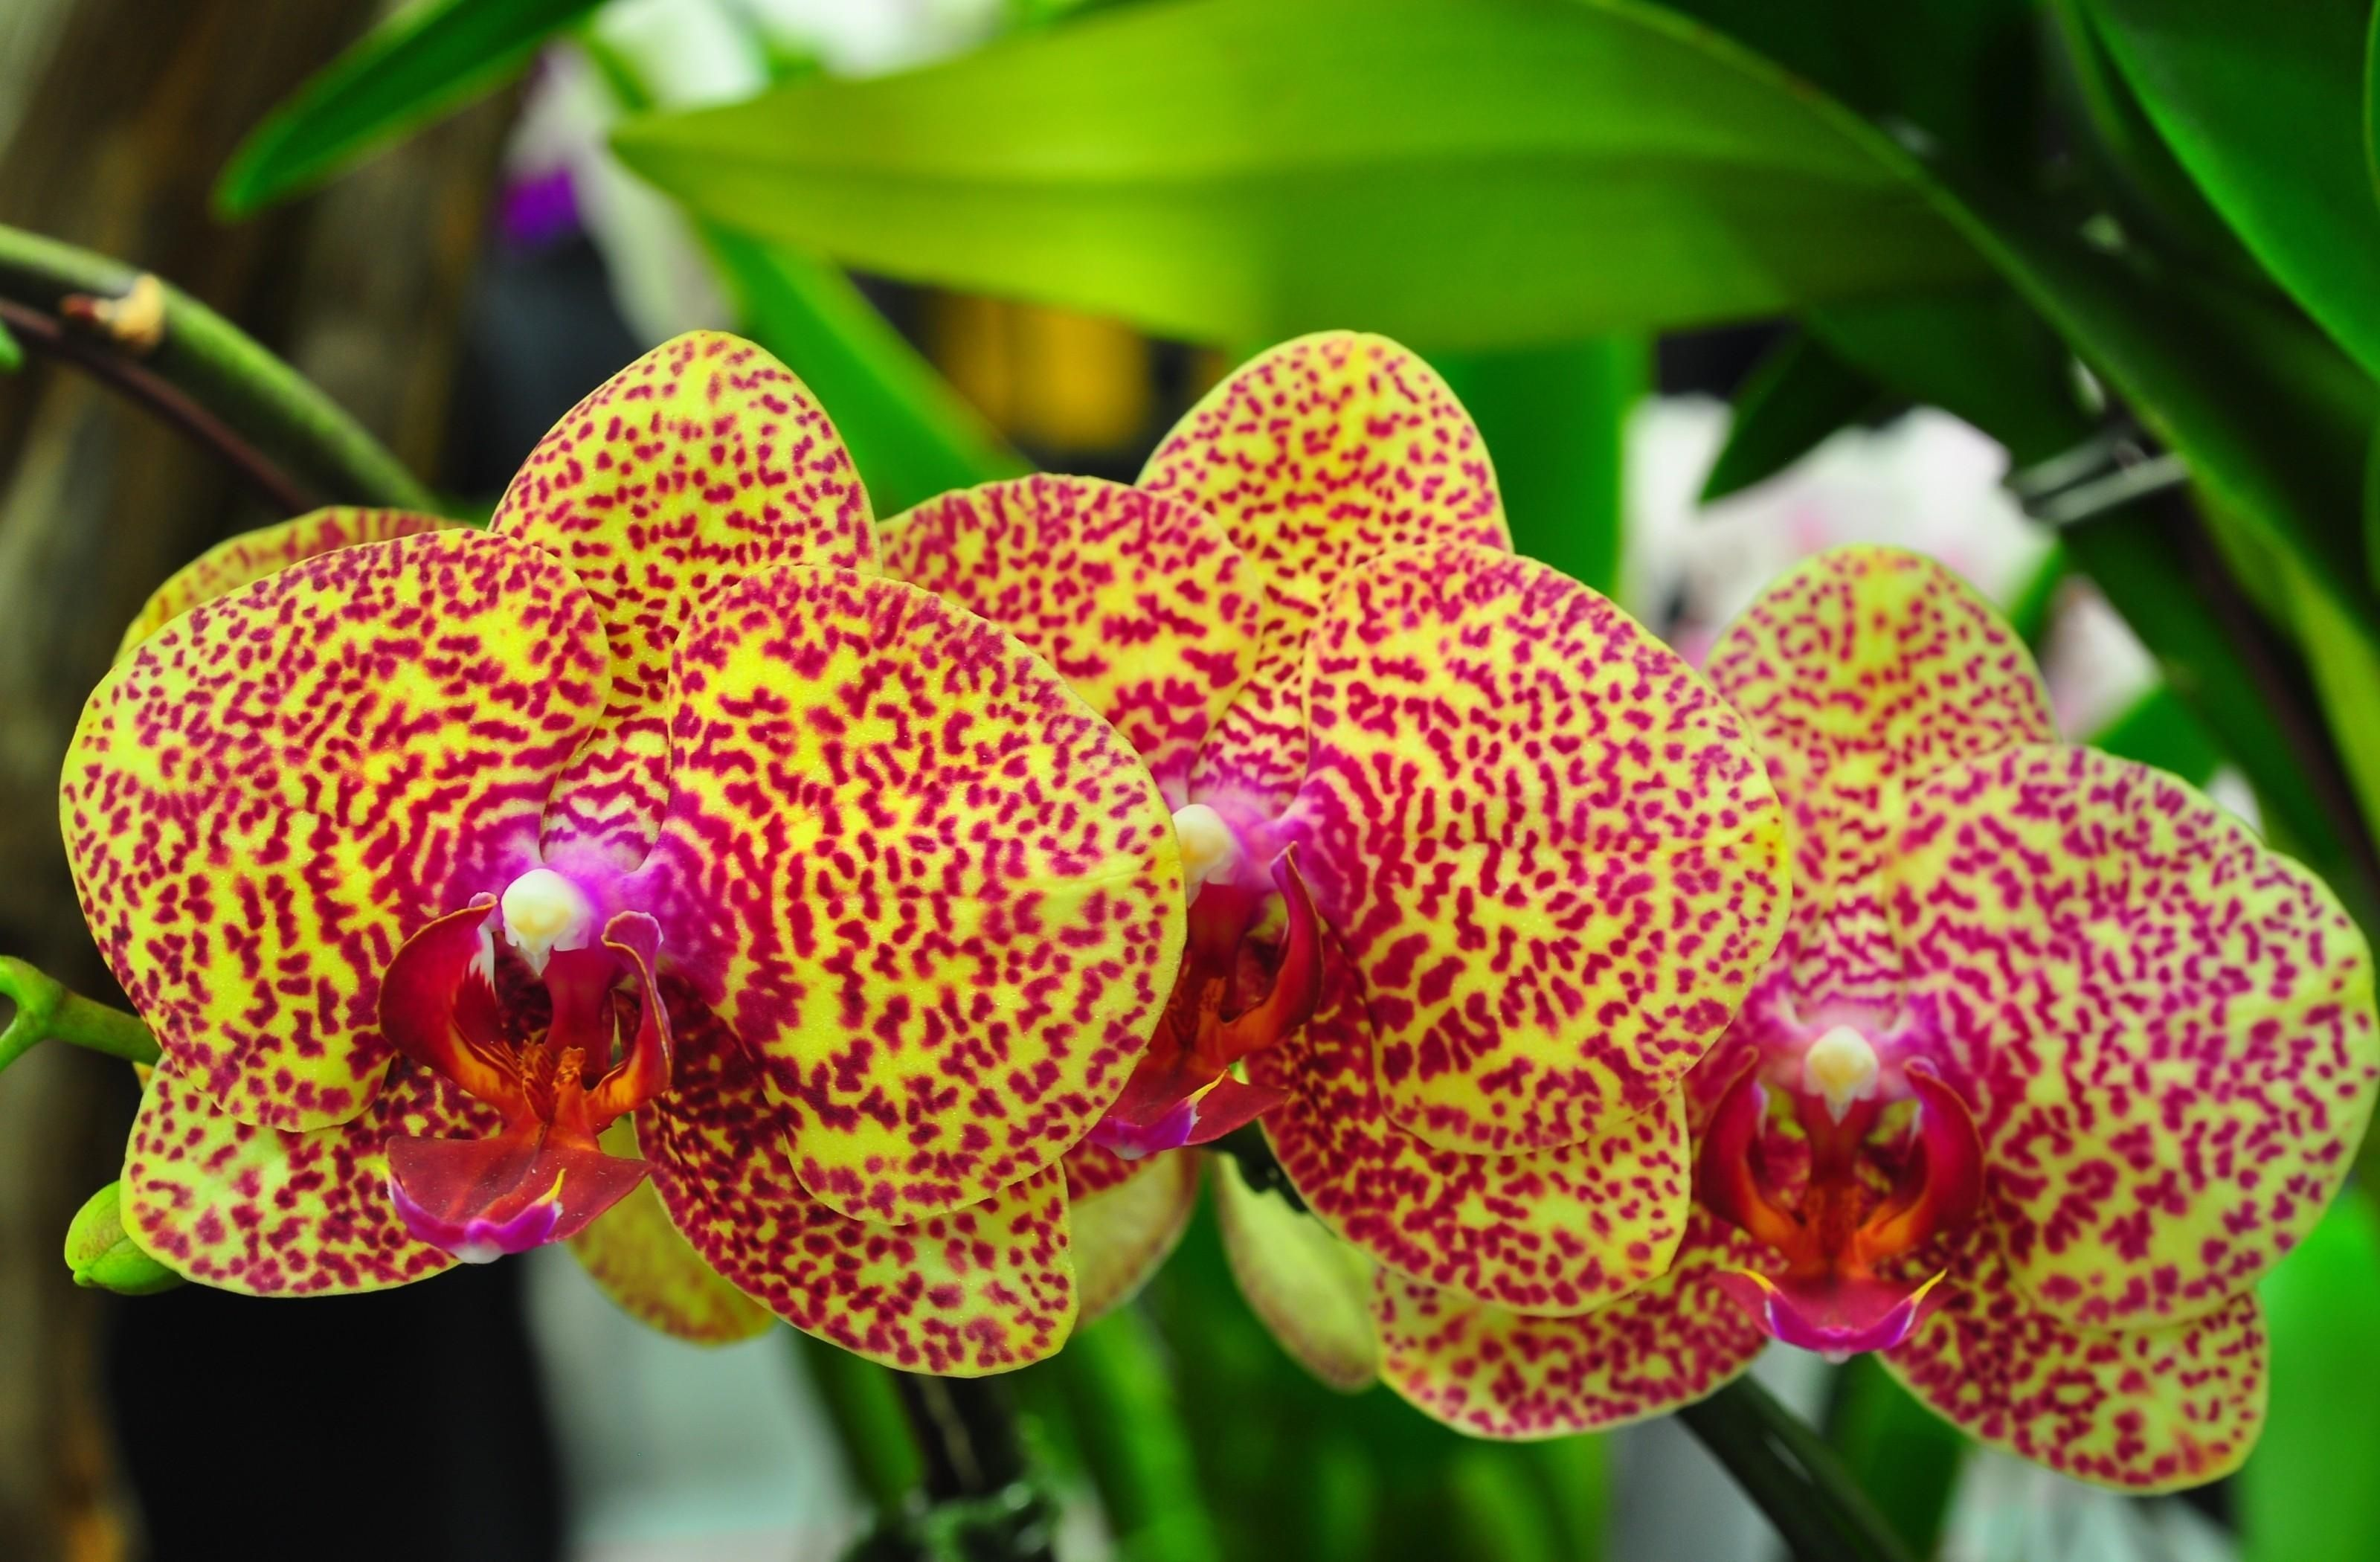 Download wallpaper orchids flowers spotted branch exotic hd